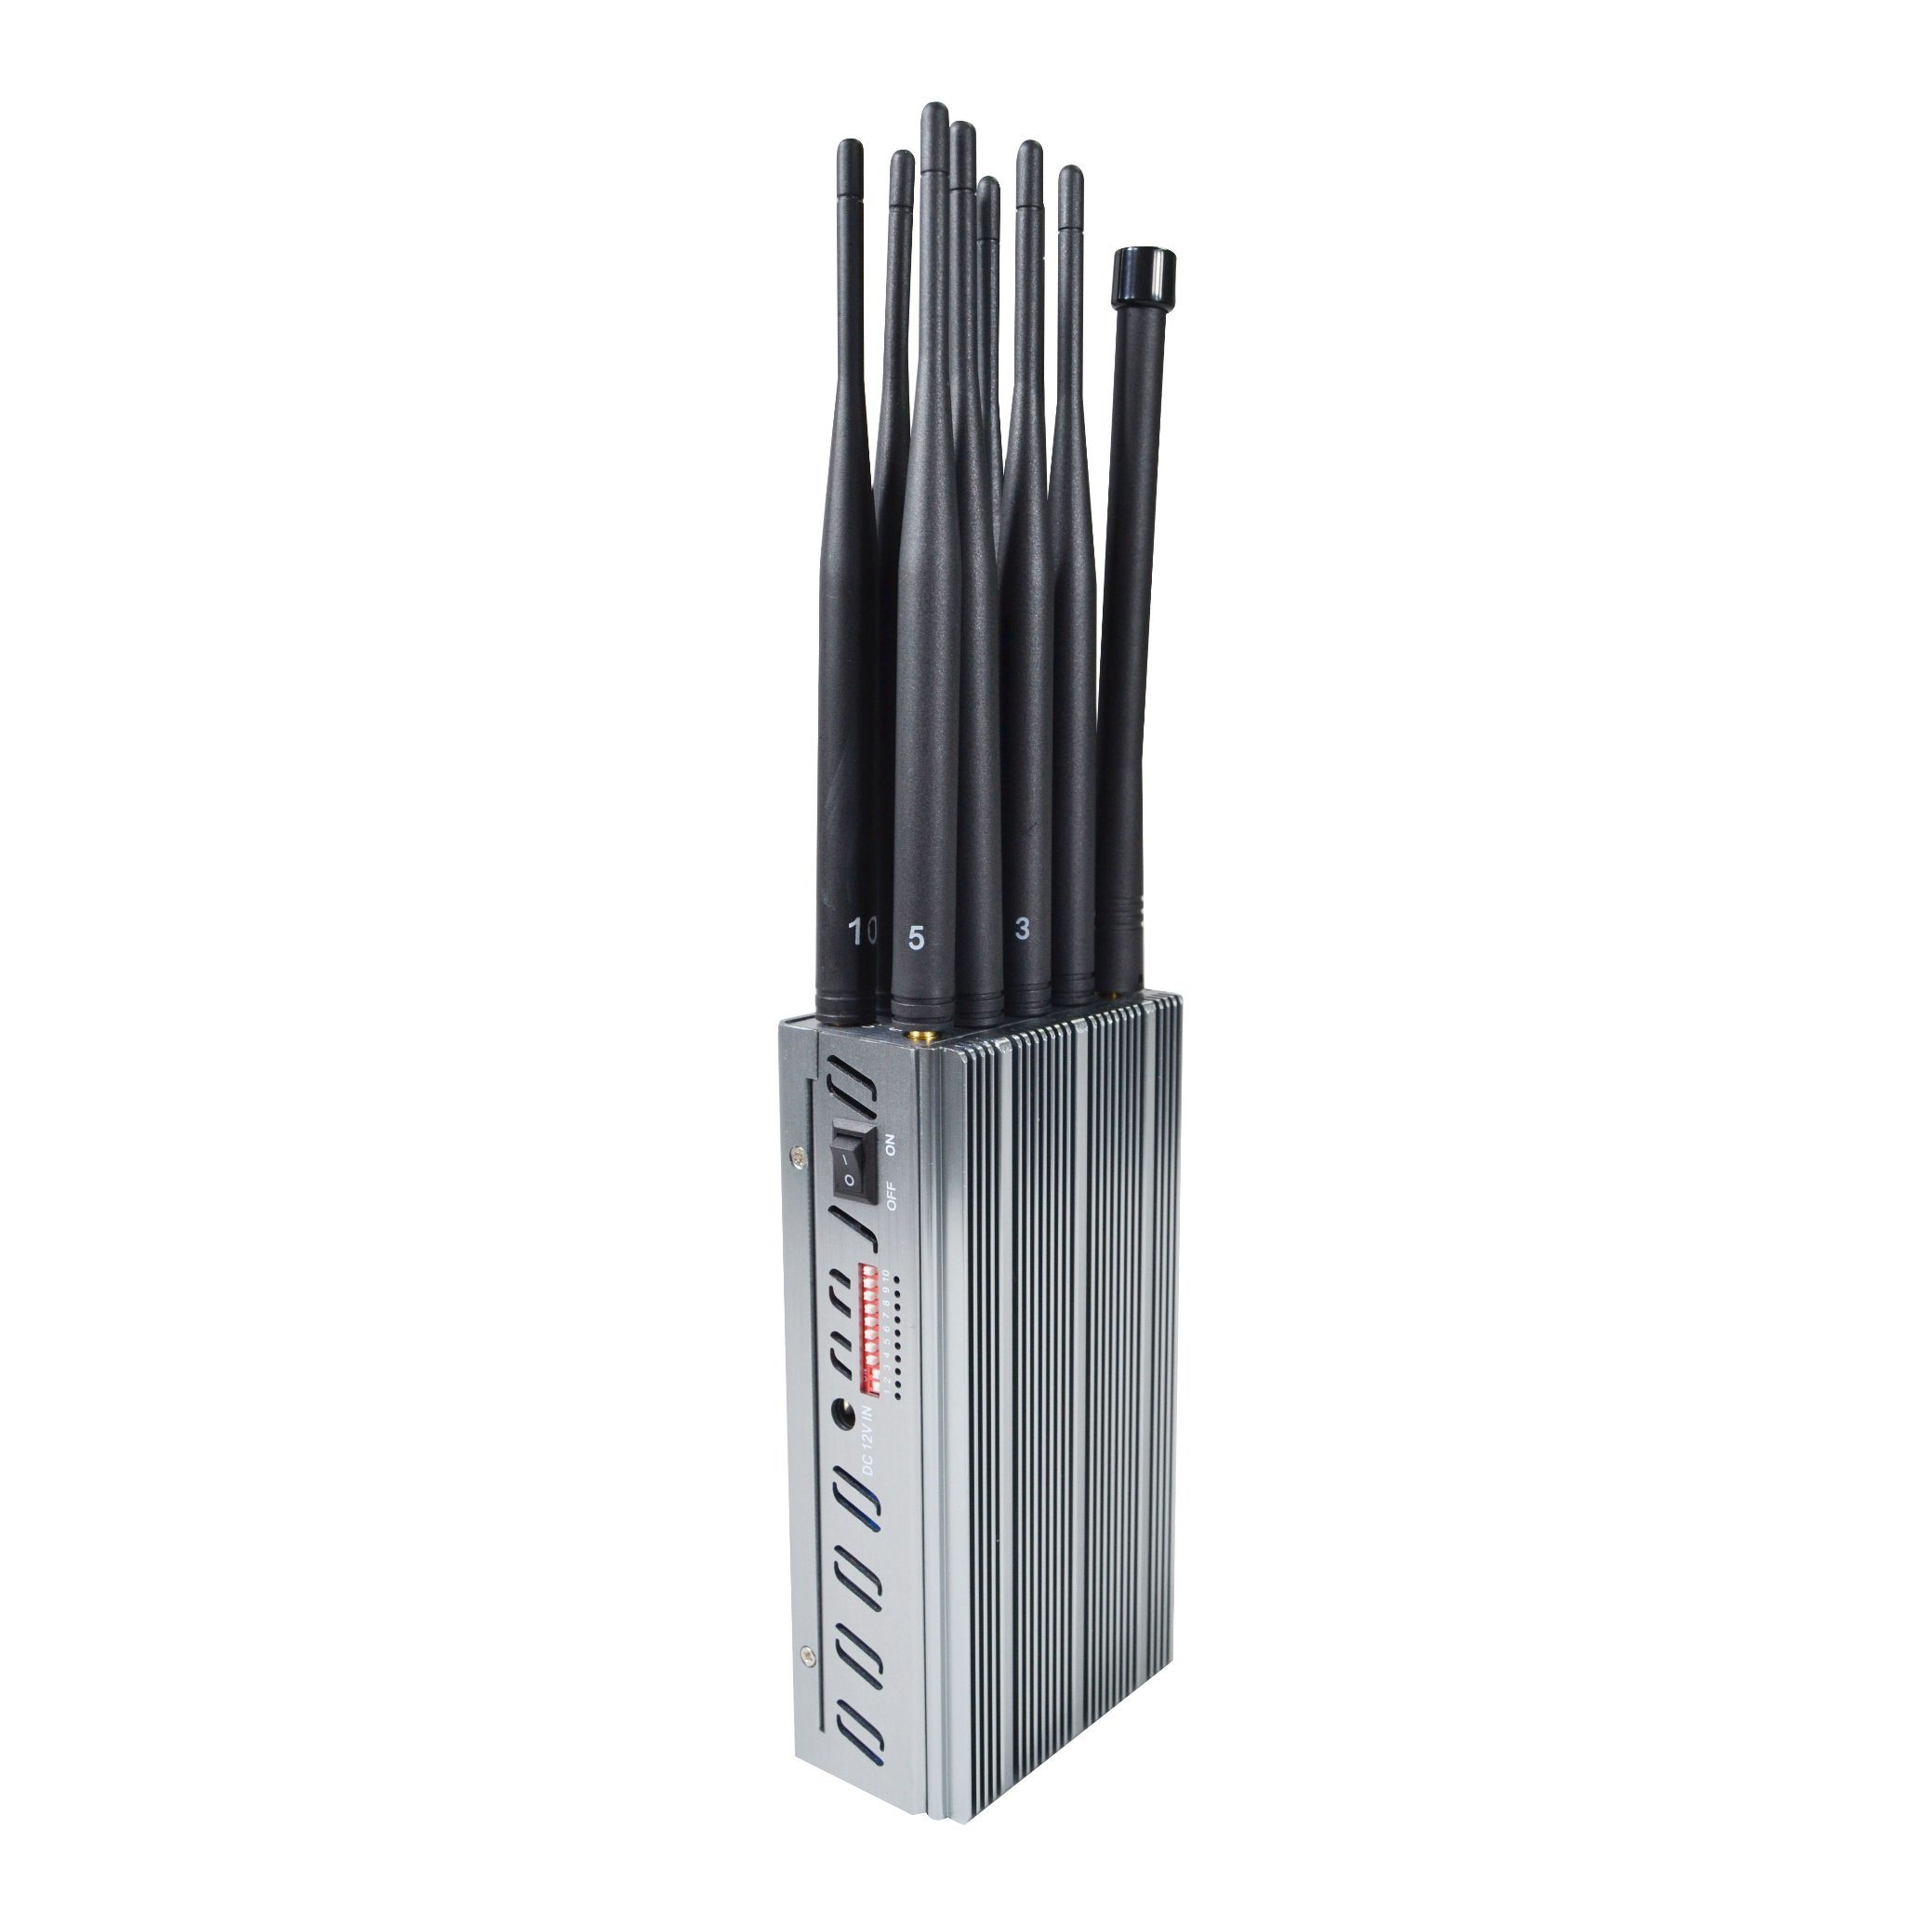 mobile phone jammer pdf - China Car Using 8000mA Portable Jammers for Long Working Time, Support Car Charging Battery - China Mobile Phone Jammer, Full Band Signal Blockers